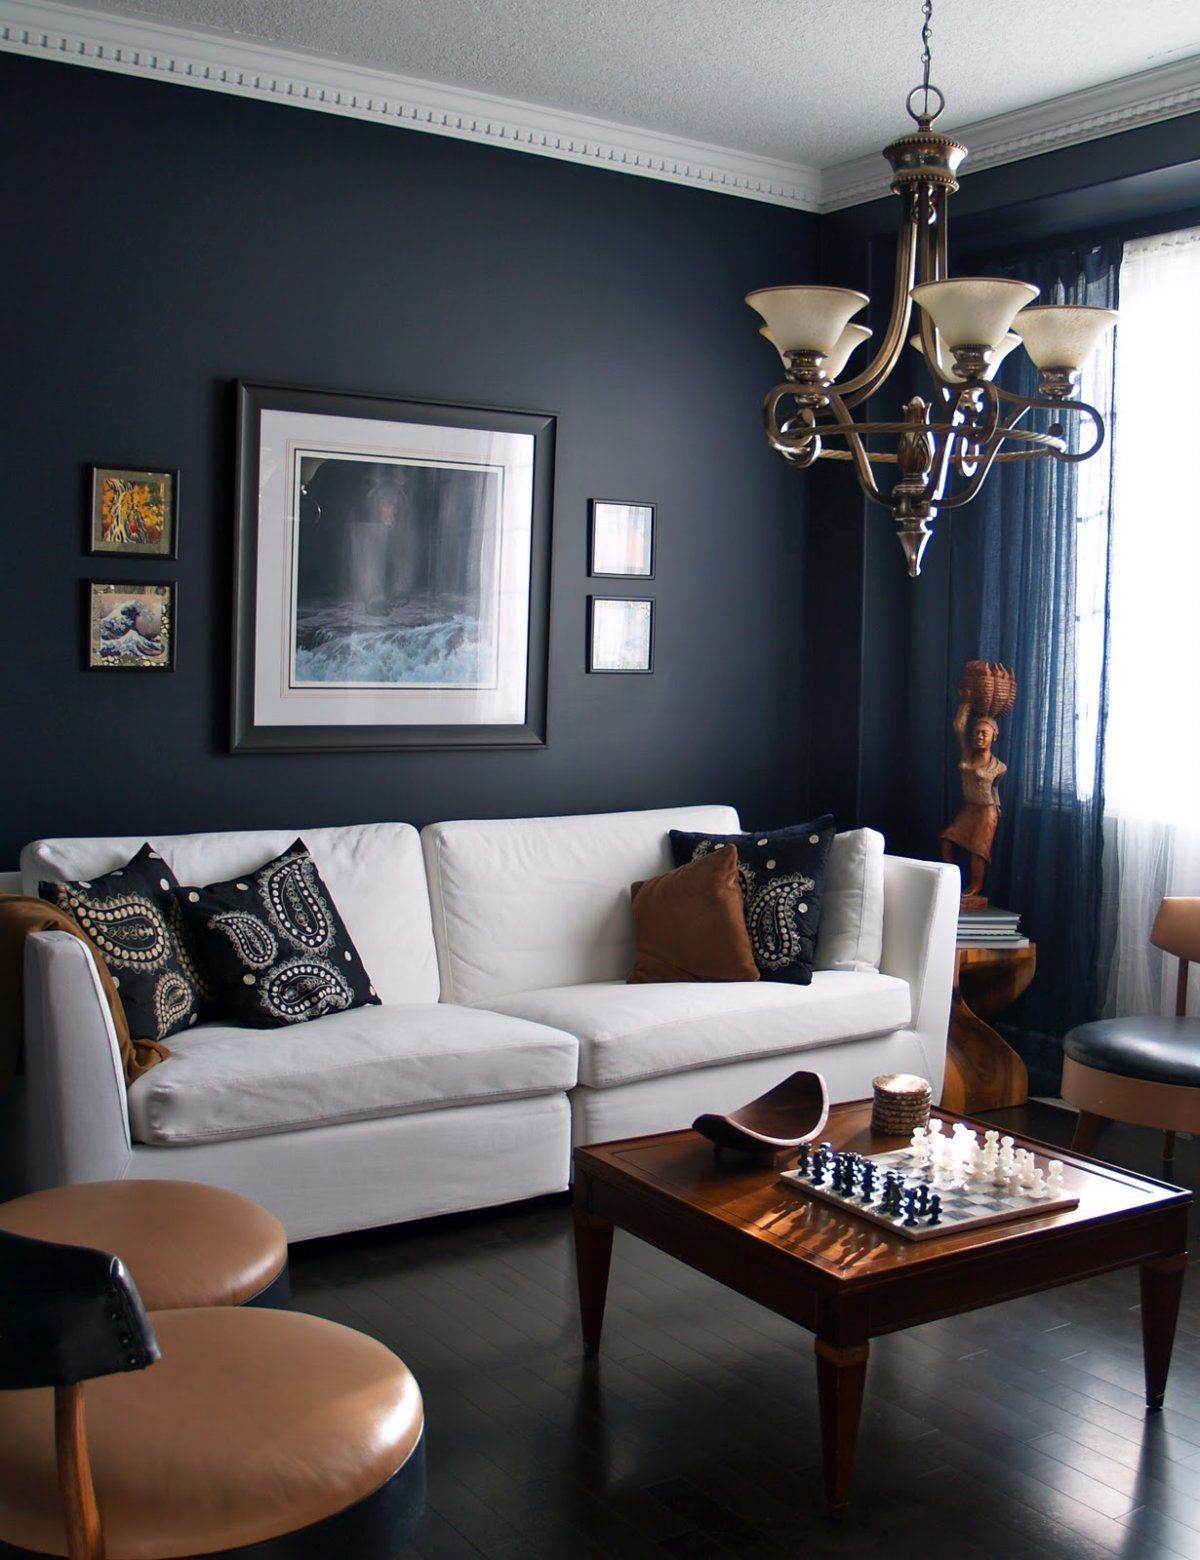 Black wall paint bedroom - Living Rooms With Dark Navy Blue Walls With White Sofa And Classic Chandelier